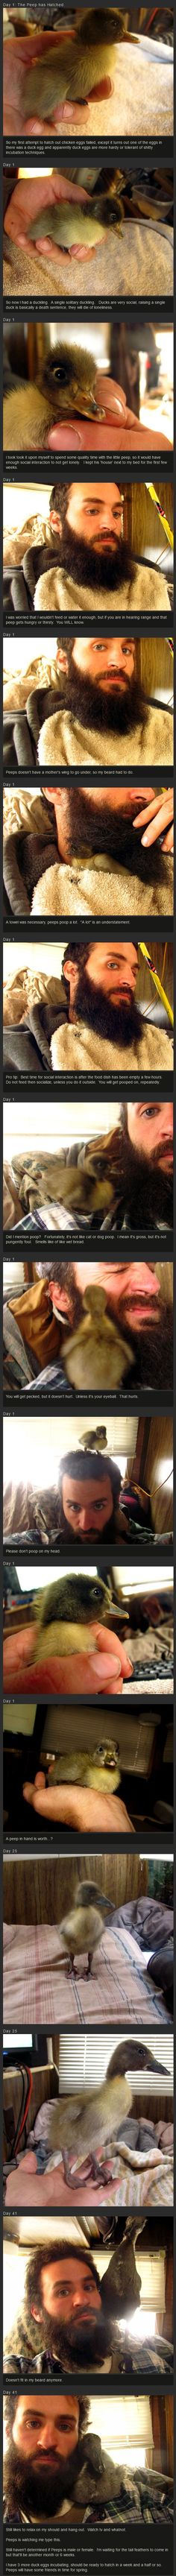 When your duck doesn't fit in your beard anymore. This is cute